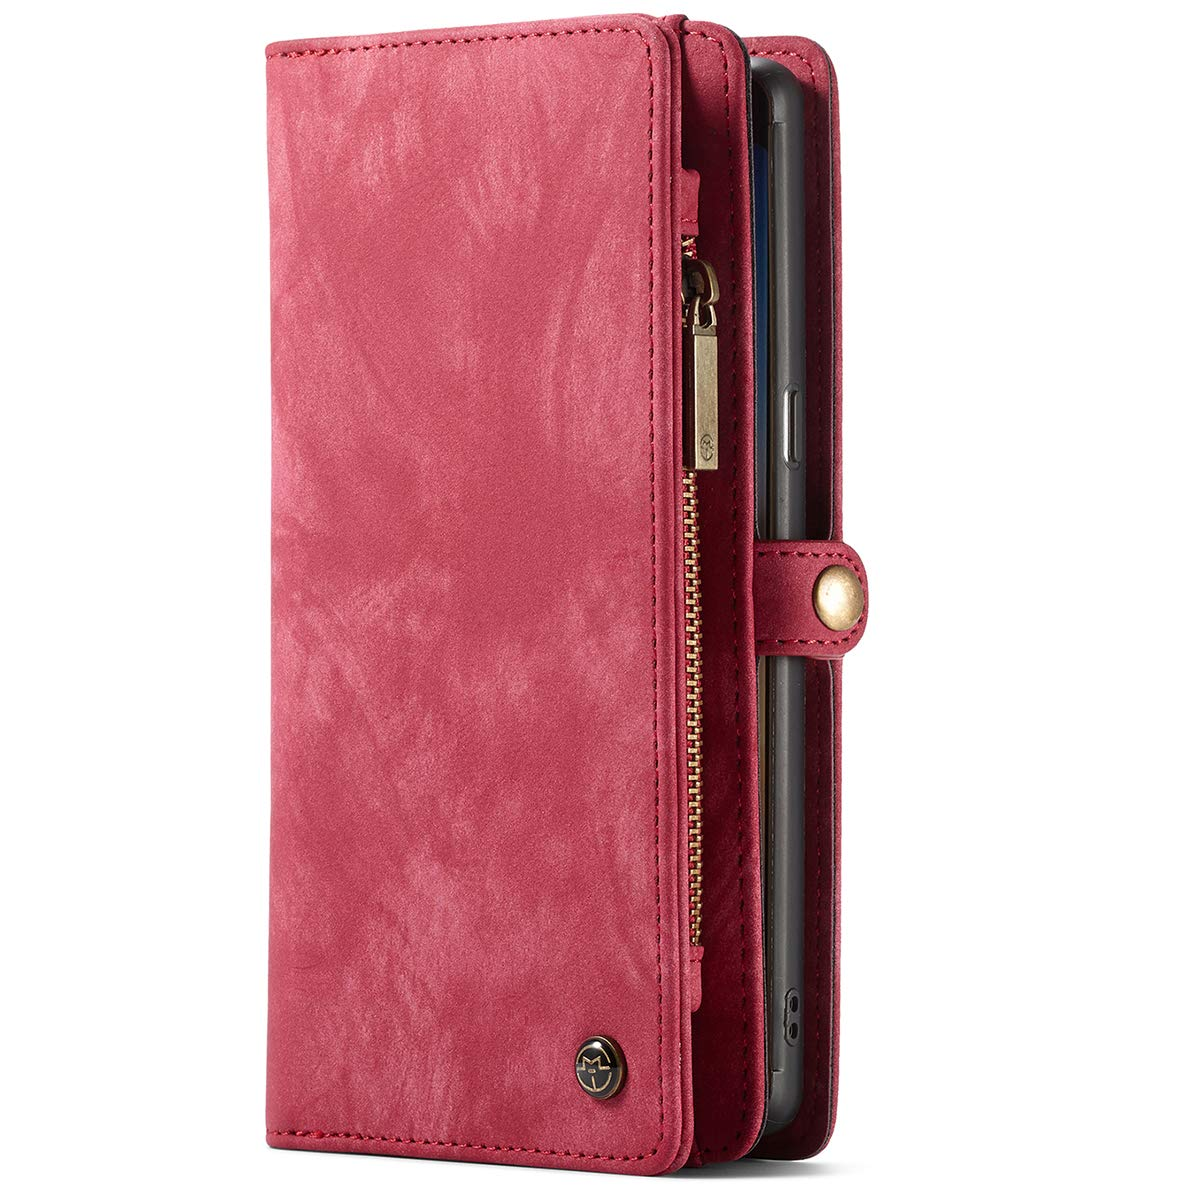 For Samsung Galaxy Note 9/S8/S8 Plus Leather Wallet Phone Detachable Case Protective Flip Cover For 5.8 inches (Samsung S8) 008-Samsung S8-Red